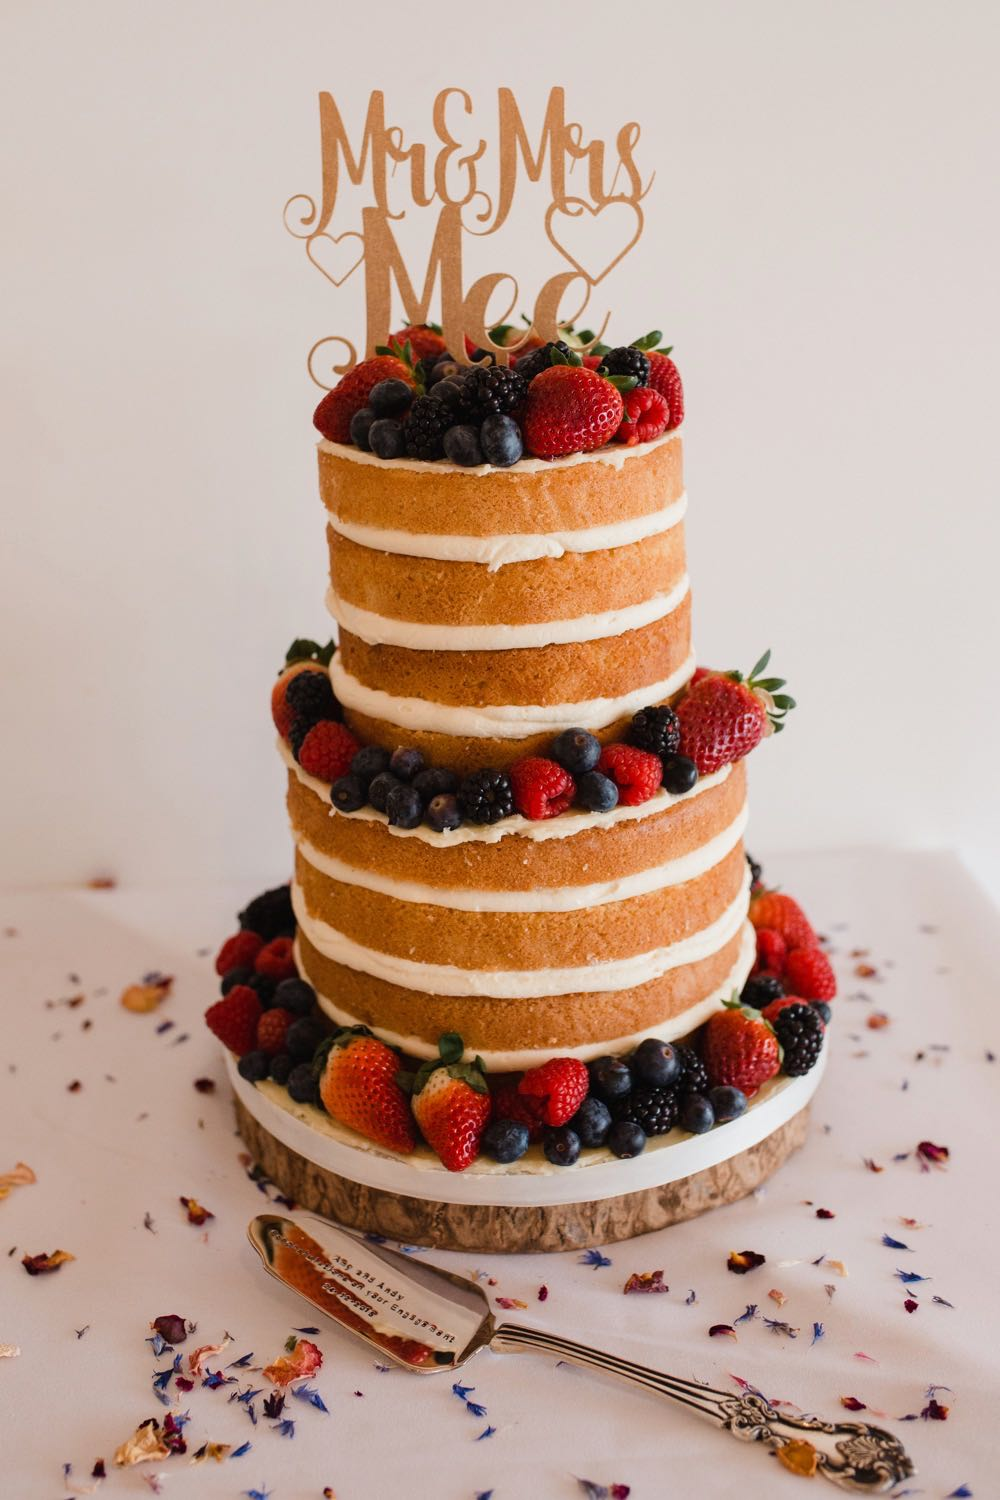 A close up shot of a naked sponge with 2 tiers each made up of 3 cream-filled layers. Each tier is decorated with berries.